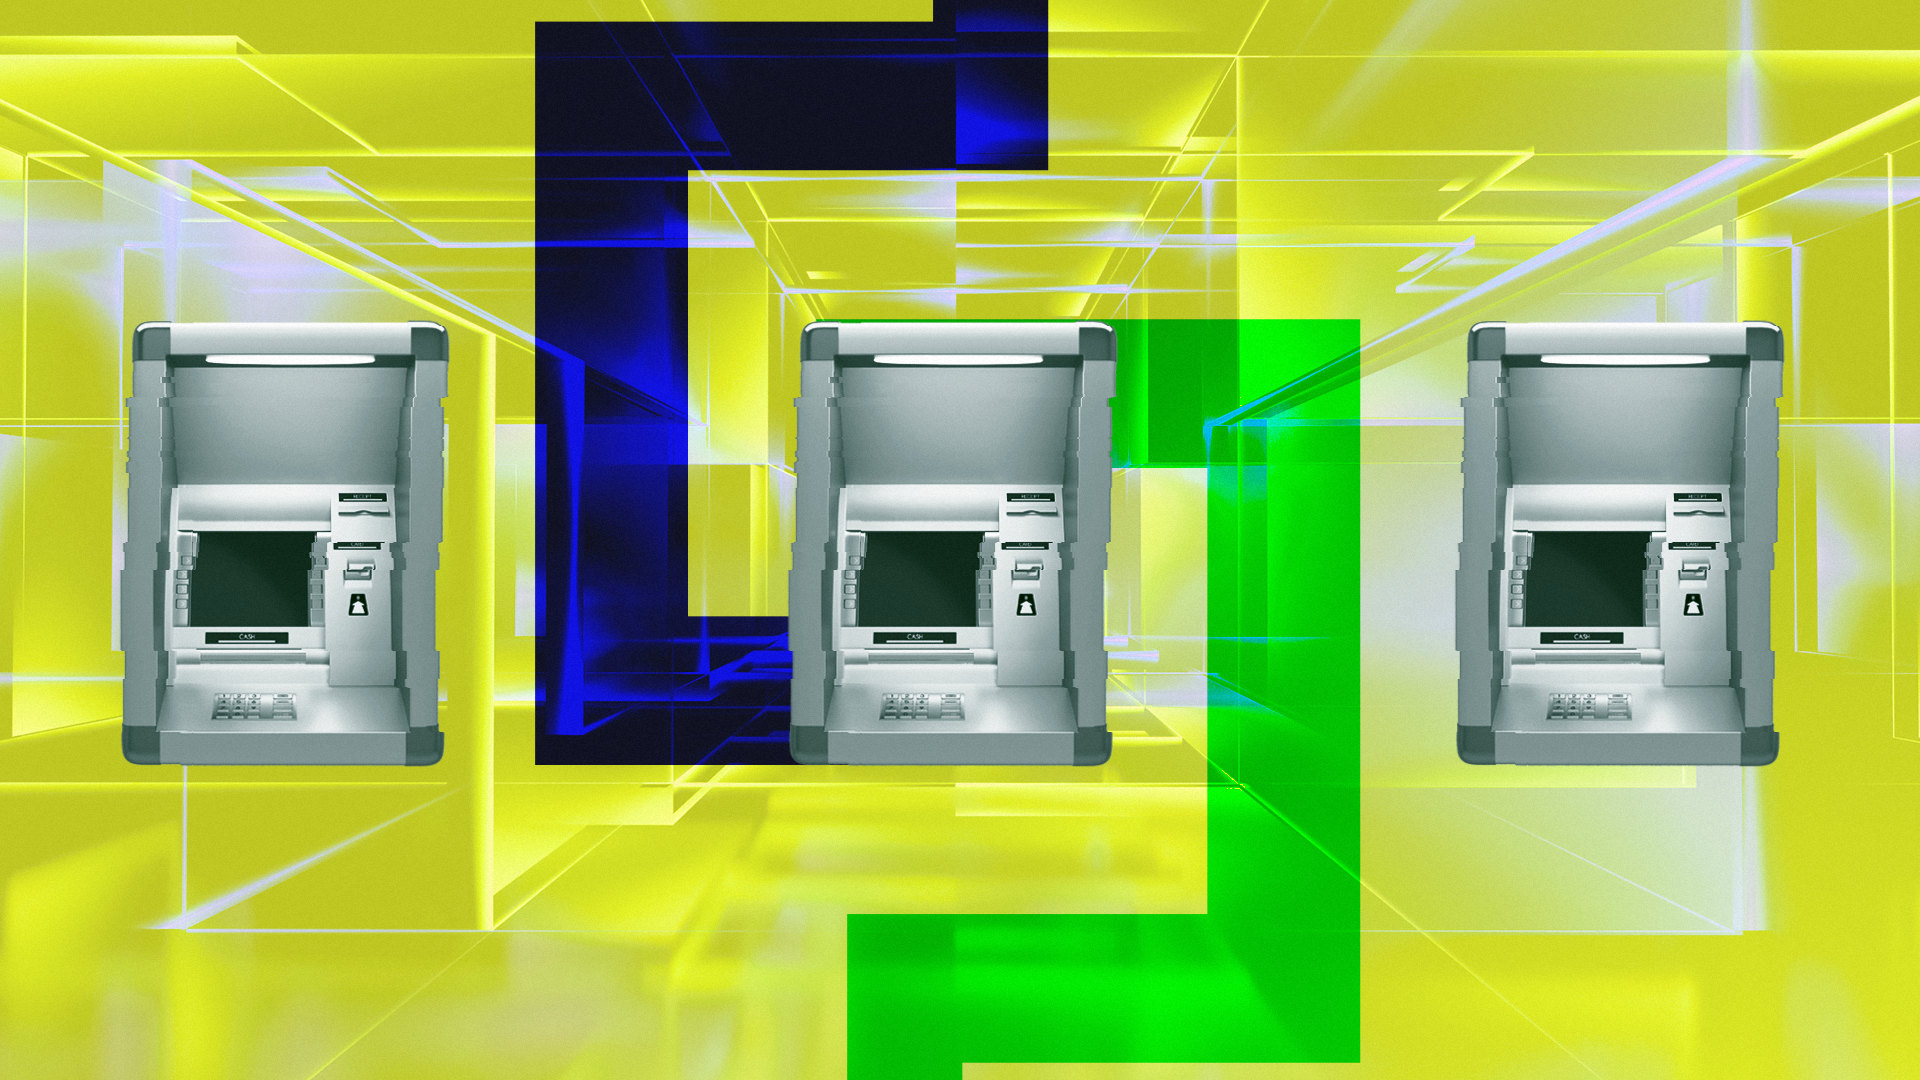 Coming soon to community banks in the US: bitcoin ATMs?